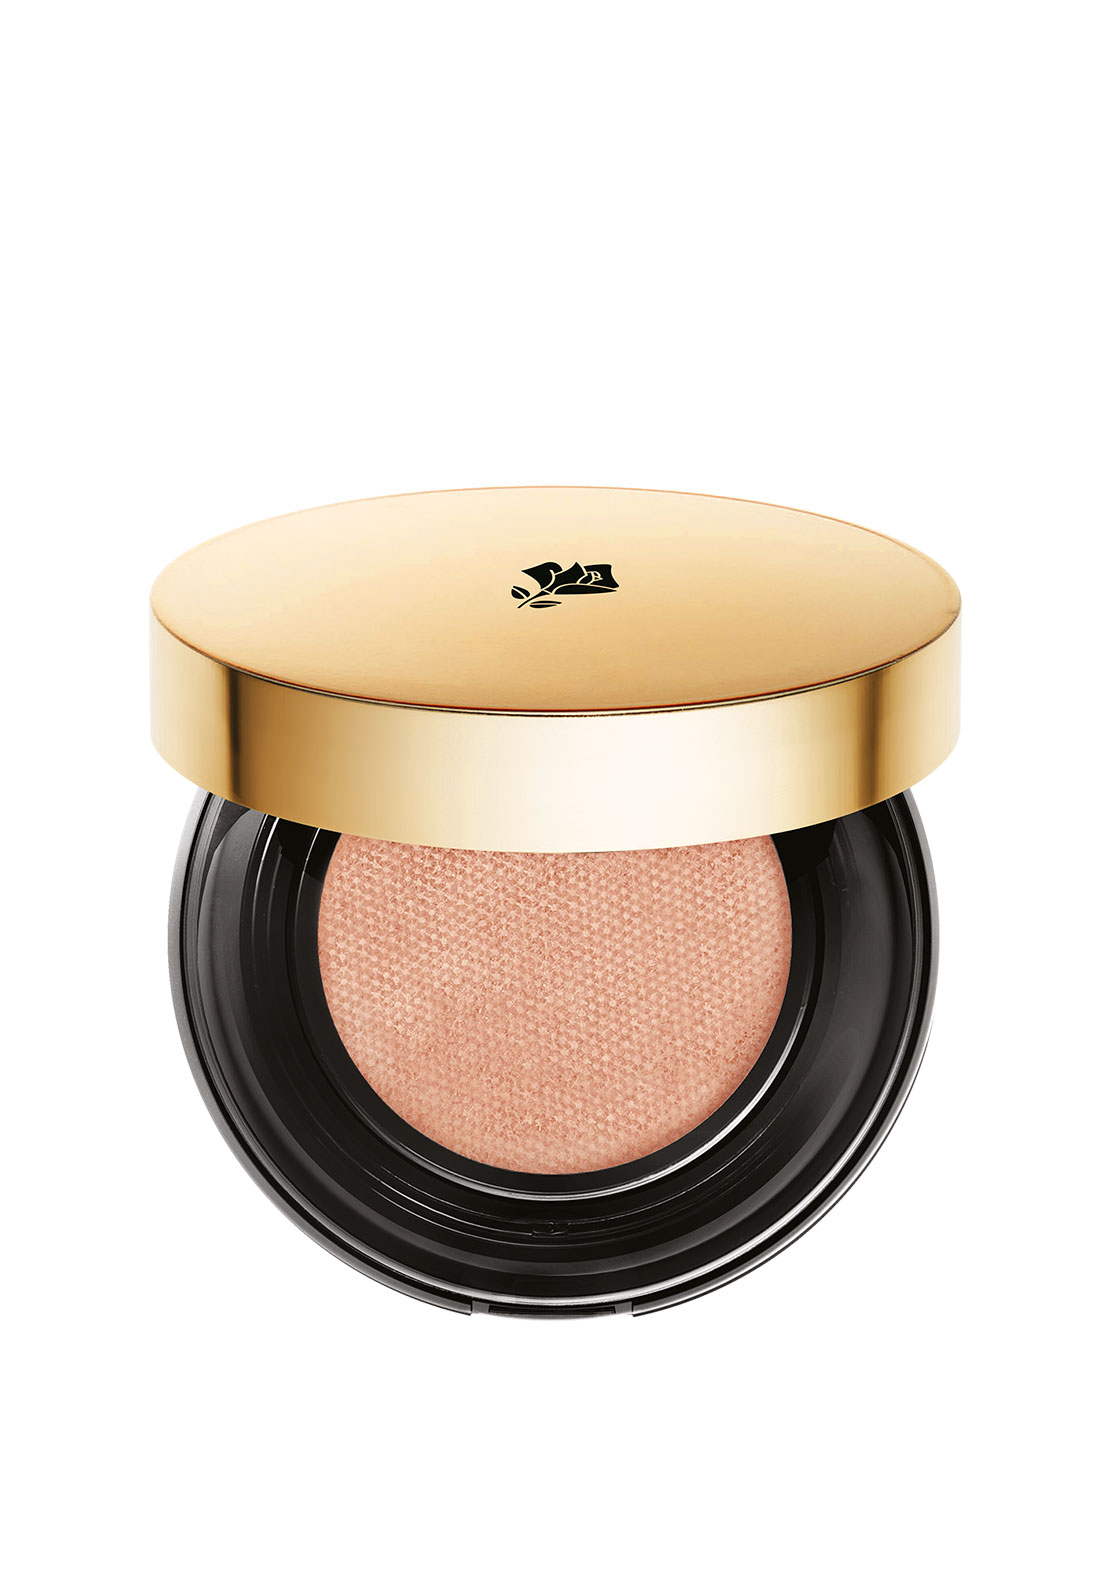 Lancome Teint Idole Ultra Cushion Compact Foundation, Beige Naturel